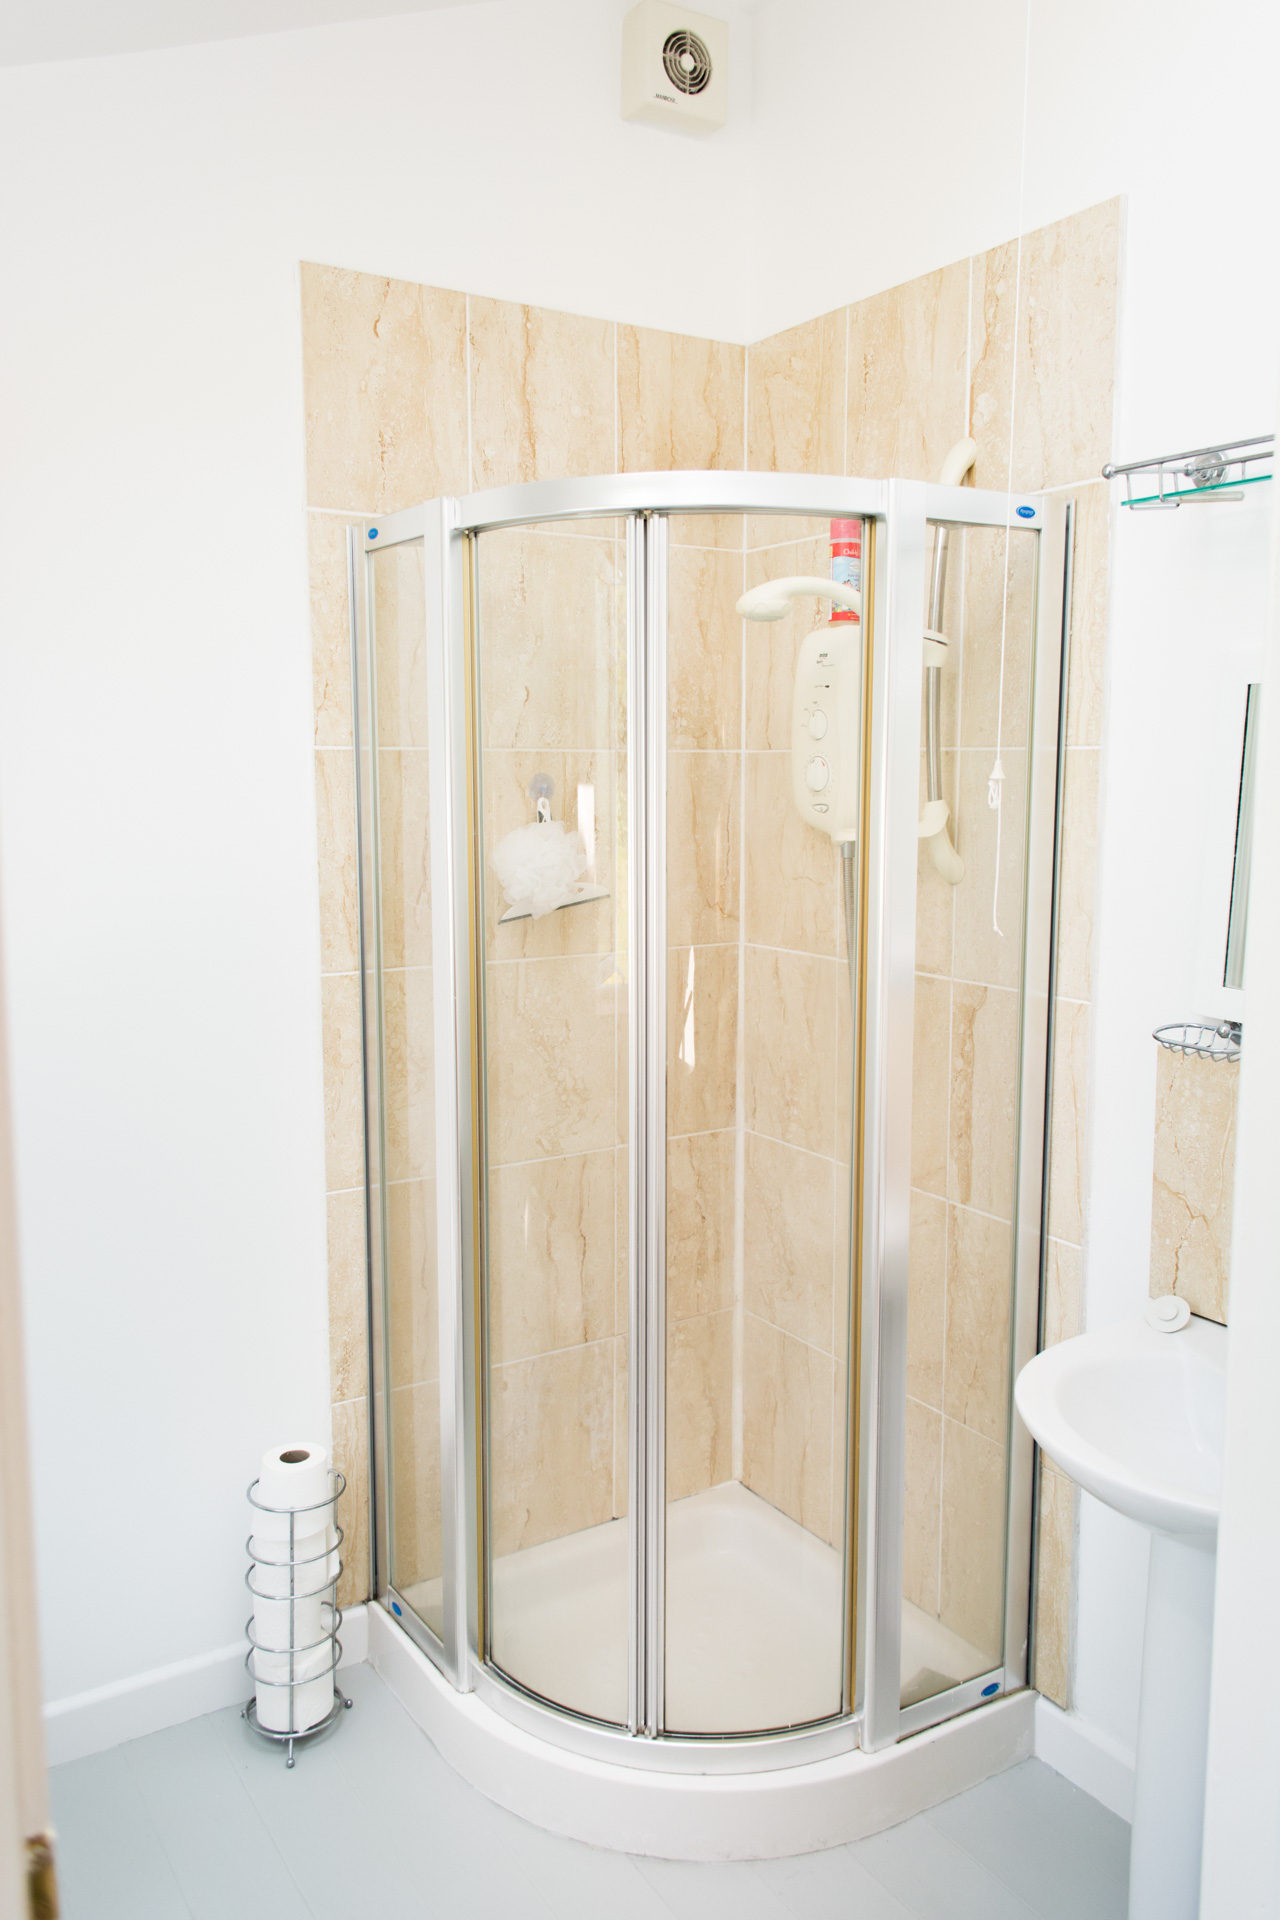 Modern large shower cubicle.